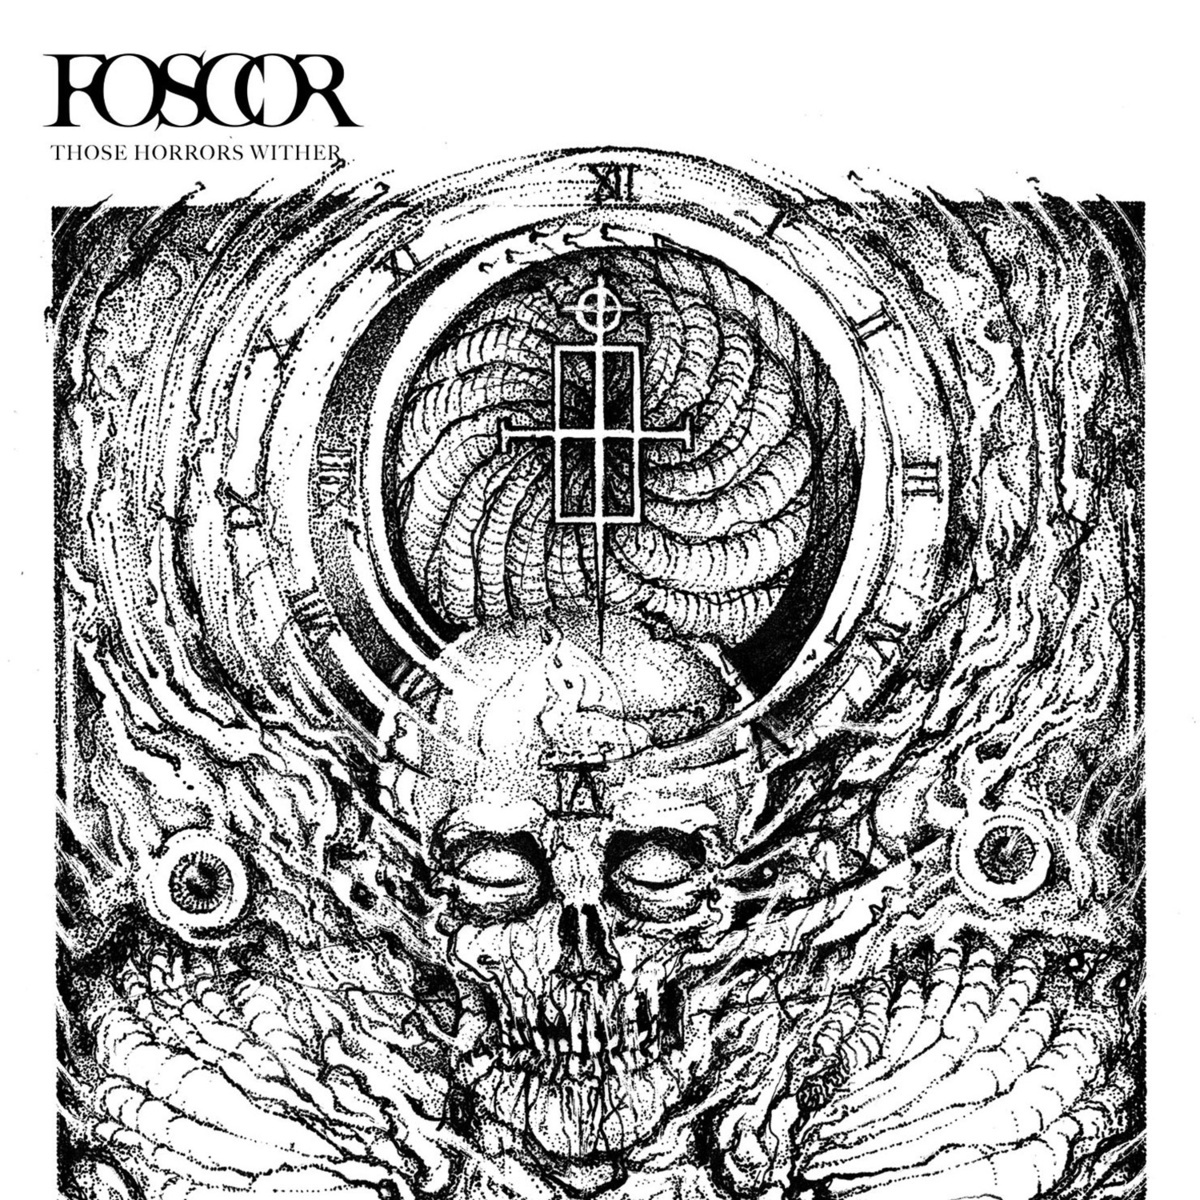 Foscor – Those Horrors Wither